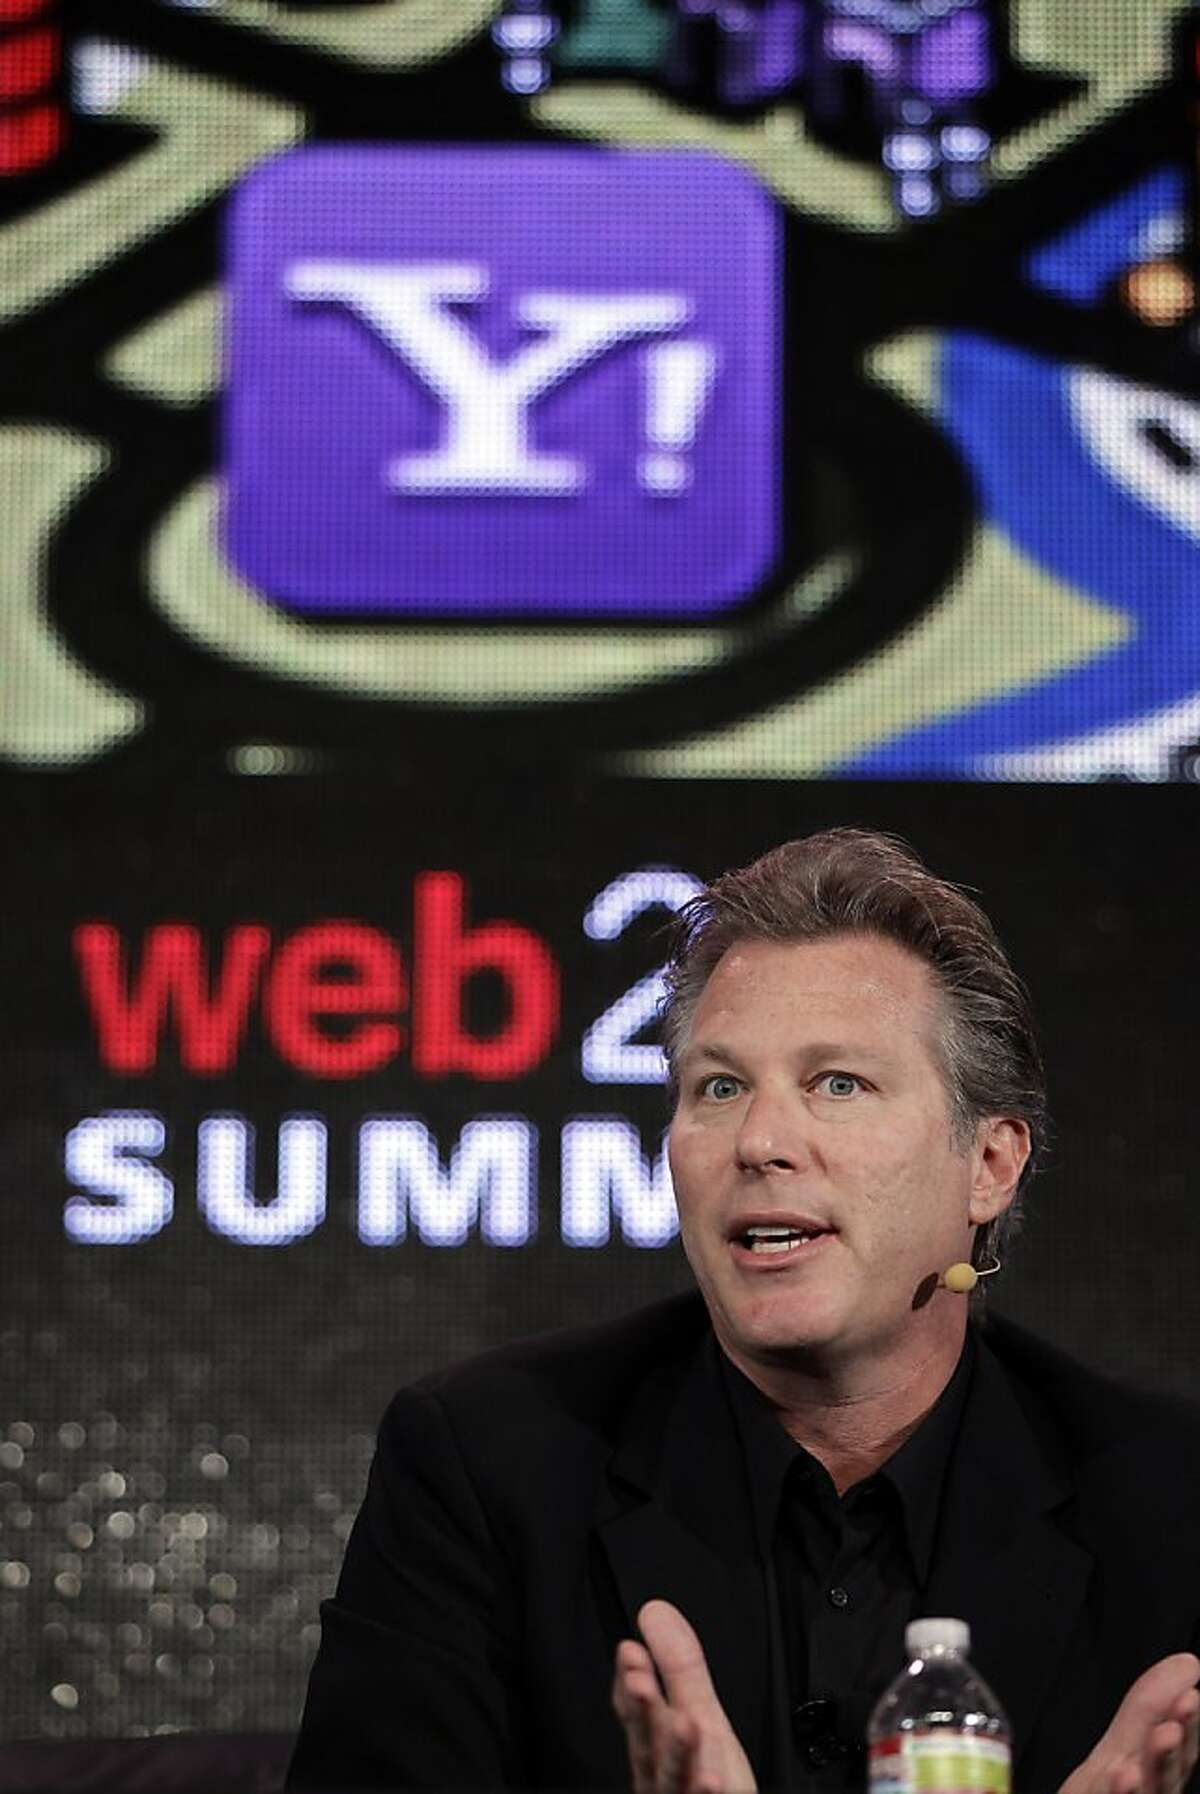 FILE - In this Oct. 17, 2011 file photo, Ross Levinsohn, Yahoo Executive Vice President of Americas, speaks at the Web. 2.0 Summit in San Francisco. Scott Thompson, named CEO of Yahoo in January, reportedly will step down Sunday, May 13, 2012 amid controversy over mentions on his resume and in regulatory filings of a computer science degree he never received. Yahoo says it is appointing Levinsohn as interim CEO and Fred Amoroso as chairman of its board, effective immediately. (AP Photo/Paul Sakuma, File)